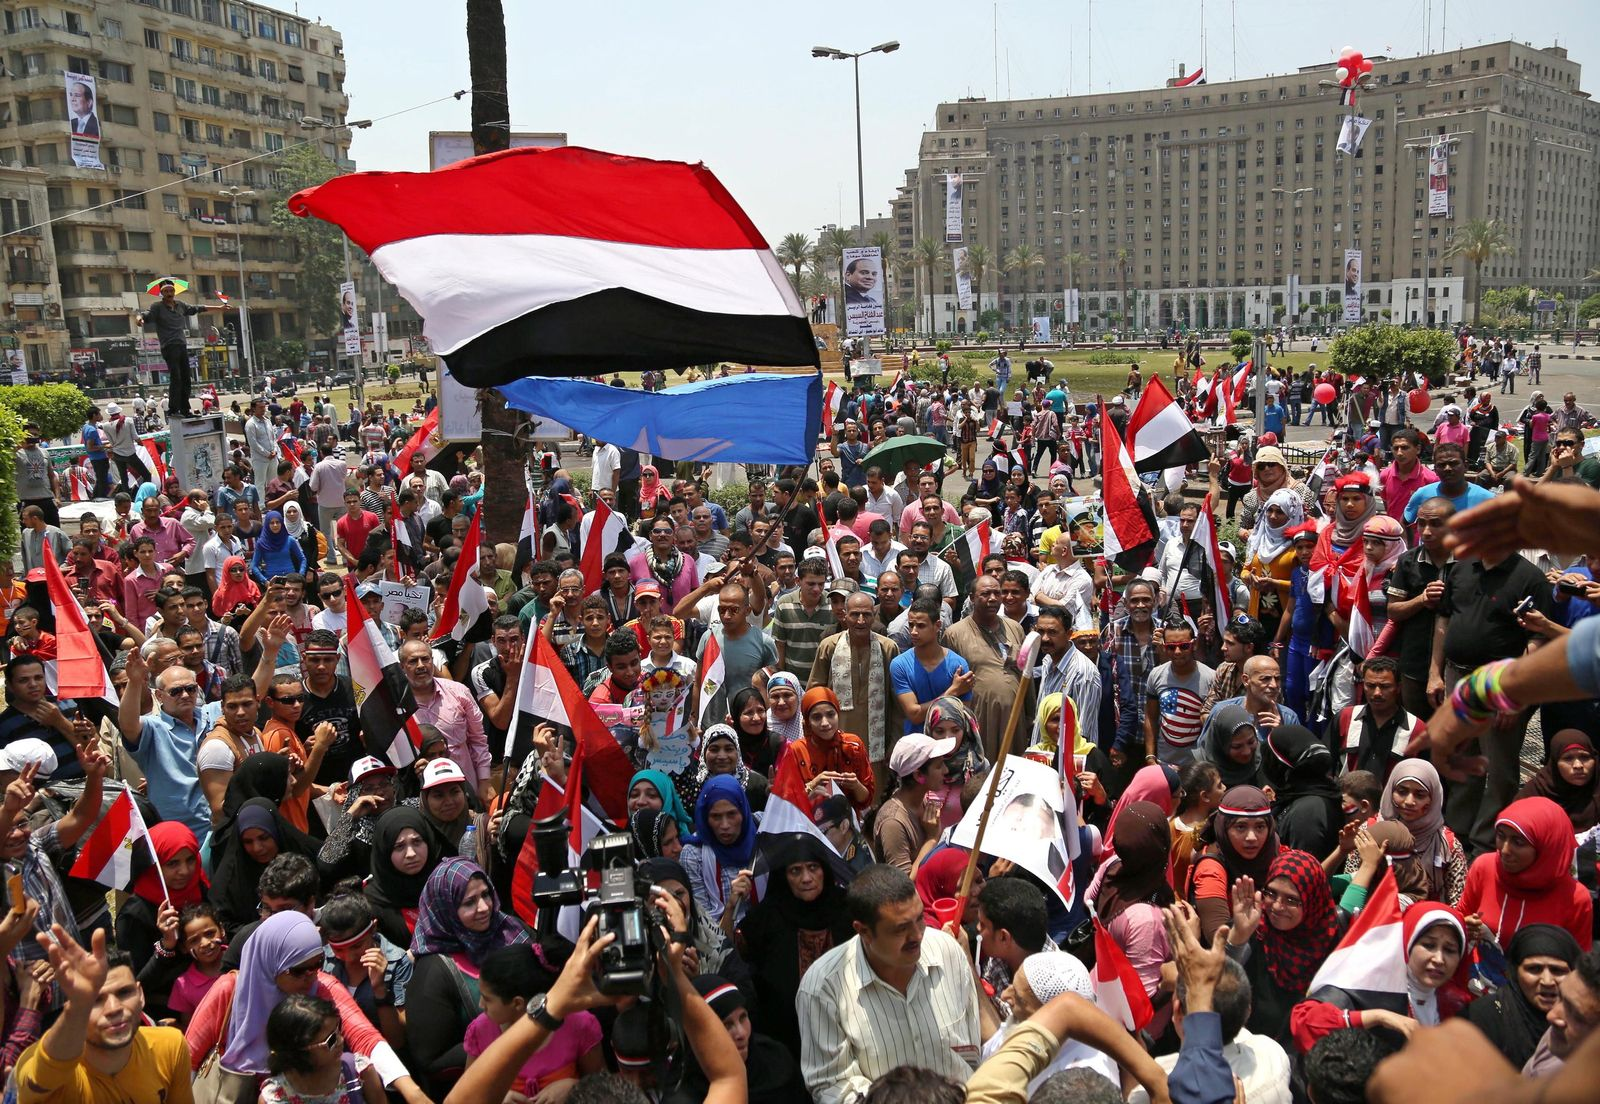 Egyptians celebrate after the inauguration of President al-Sissi